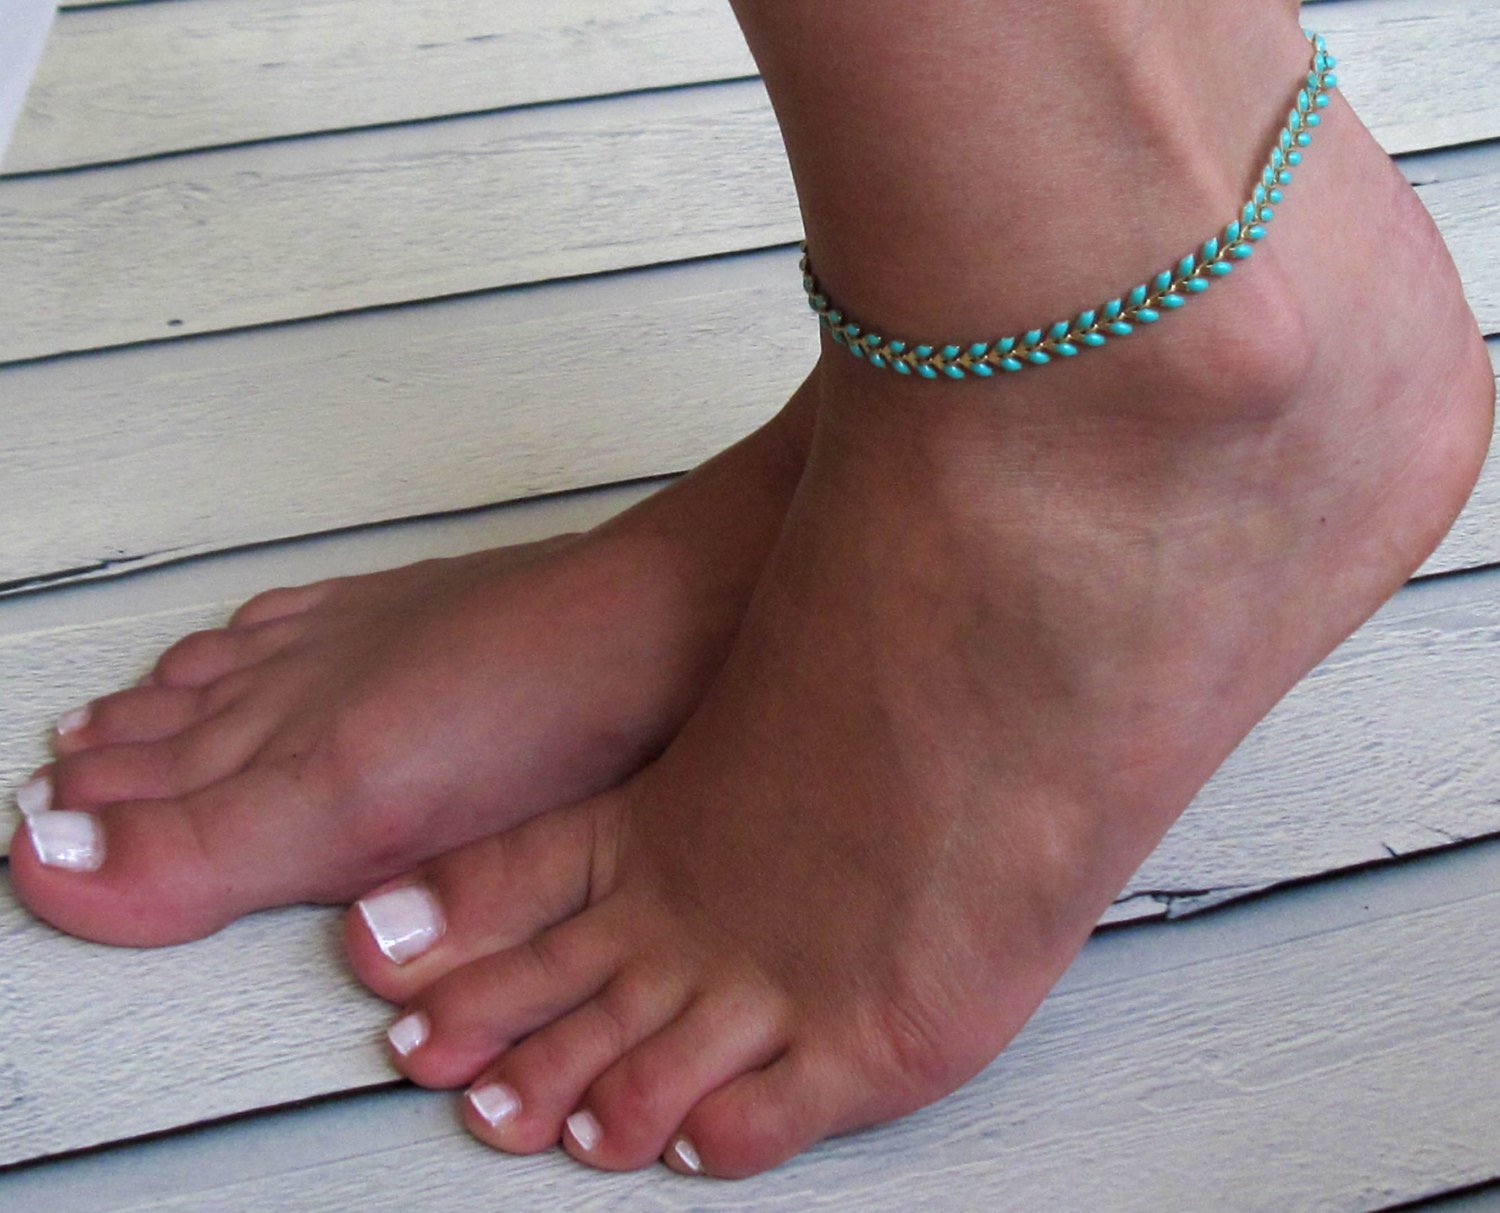 Turquoise Anklet - Ankle Bracelet - Arrow Anklet - Foot Jewelry - Foot Bracelet - Chain Anklet